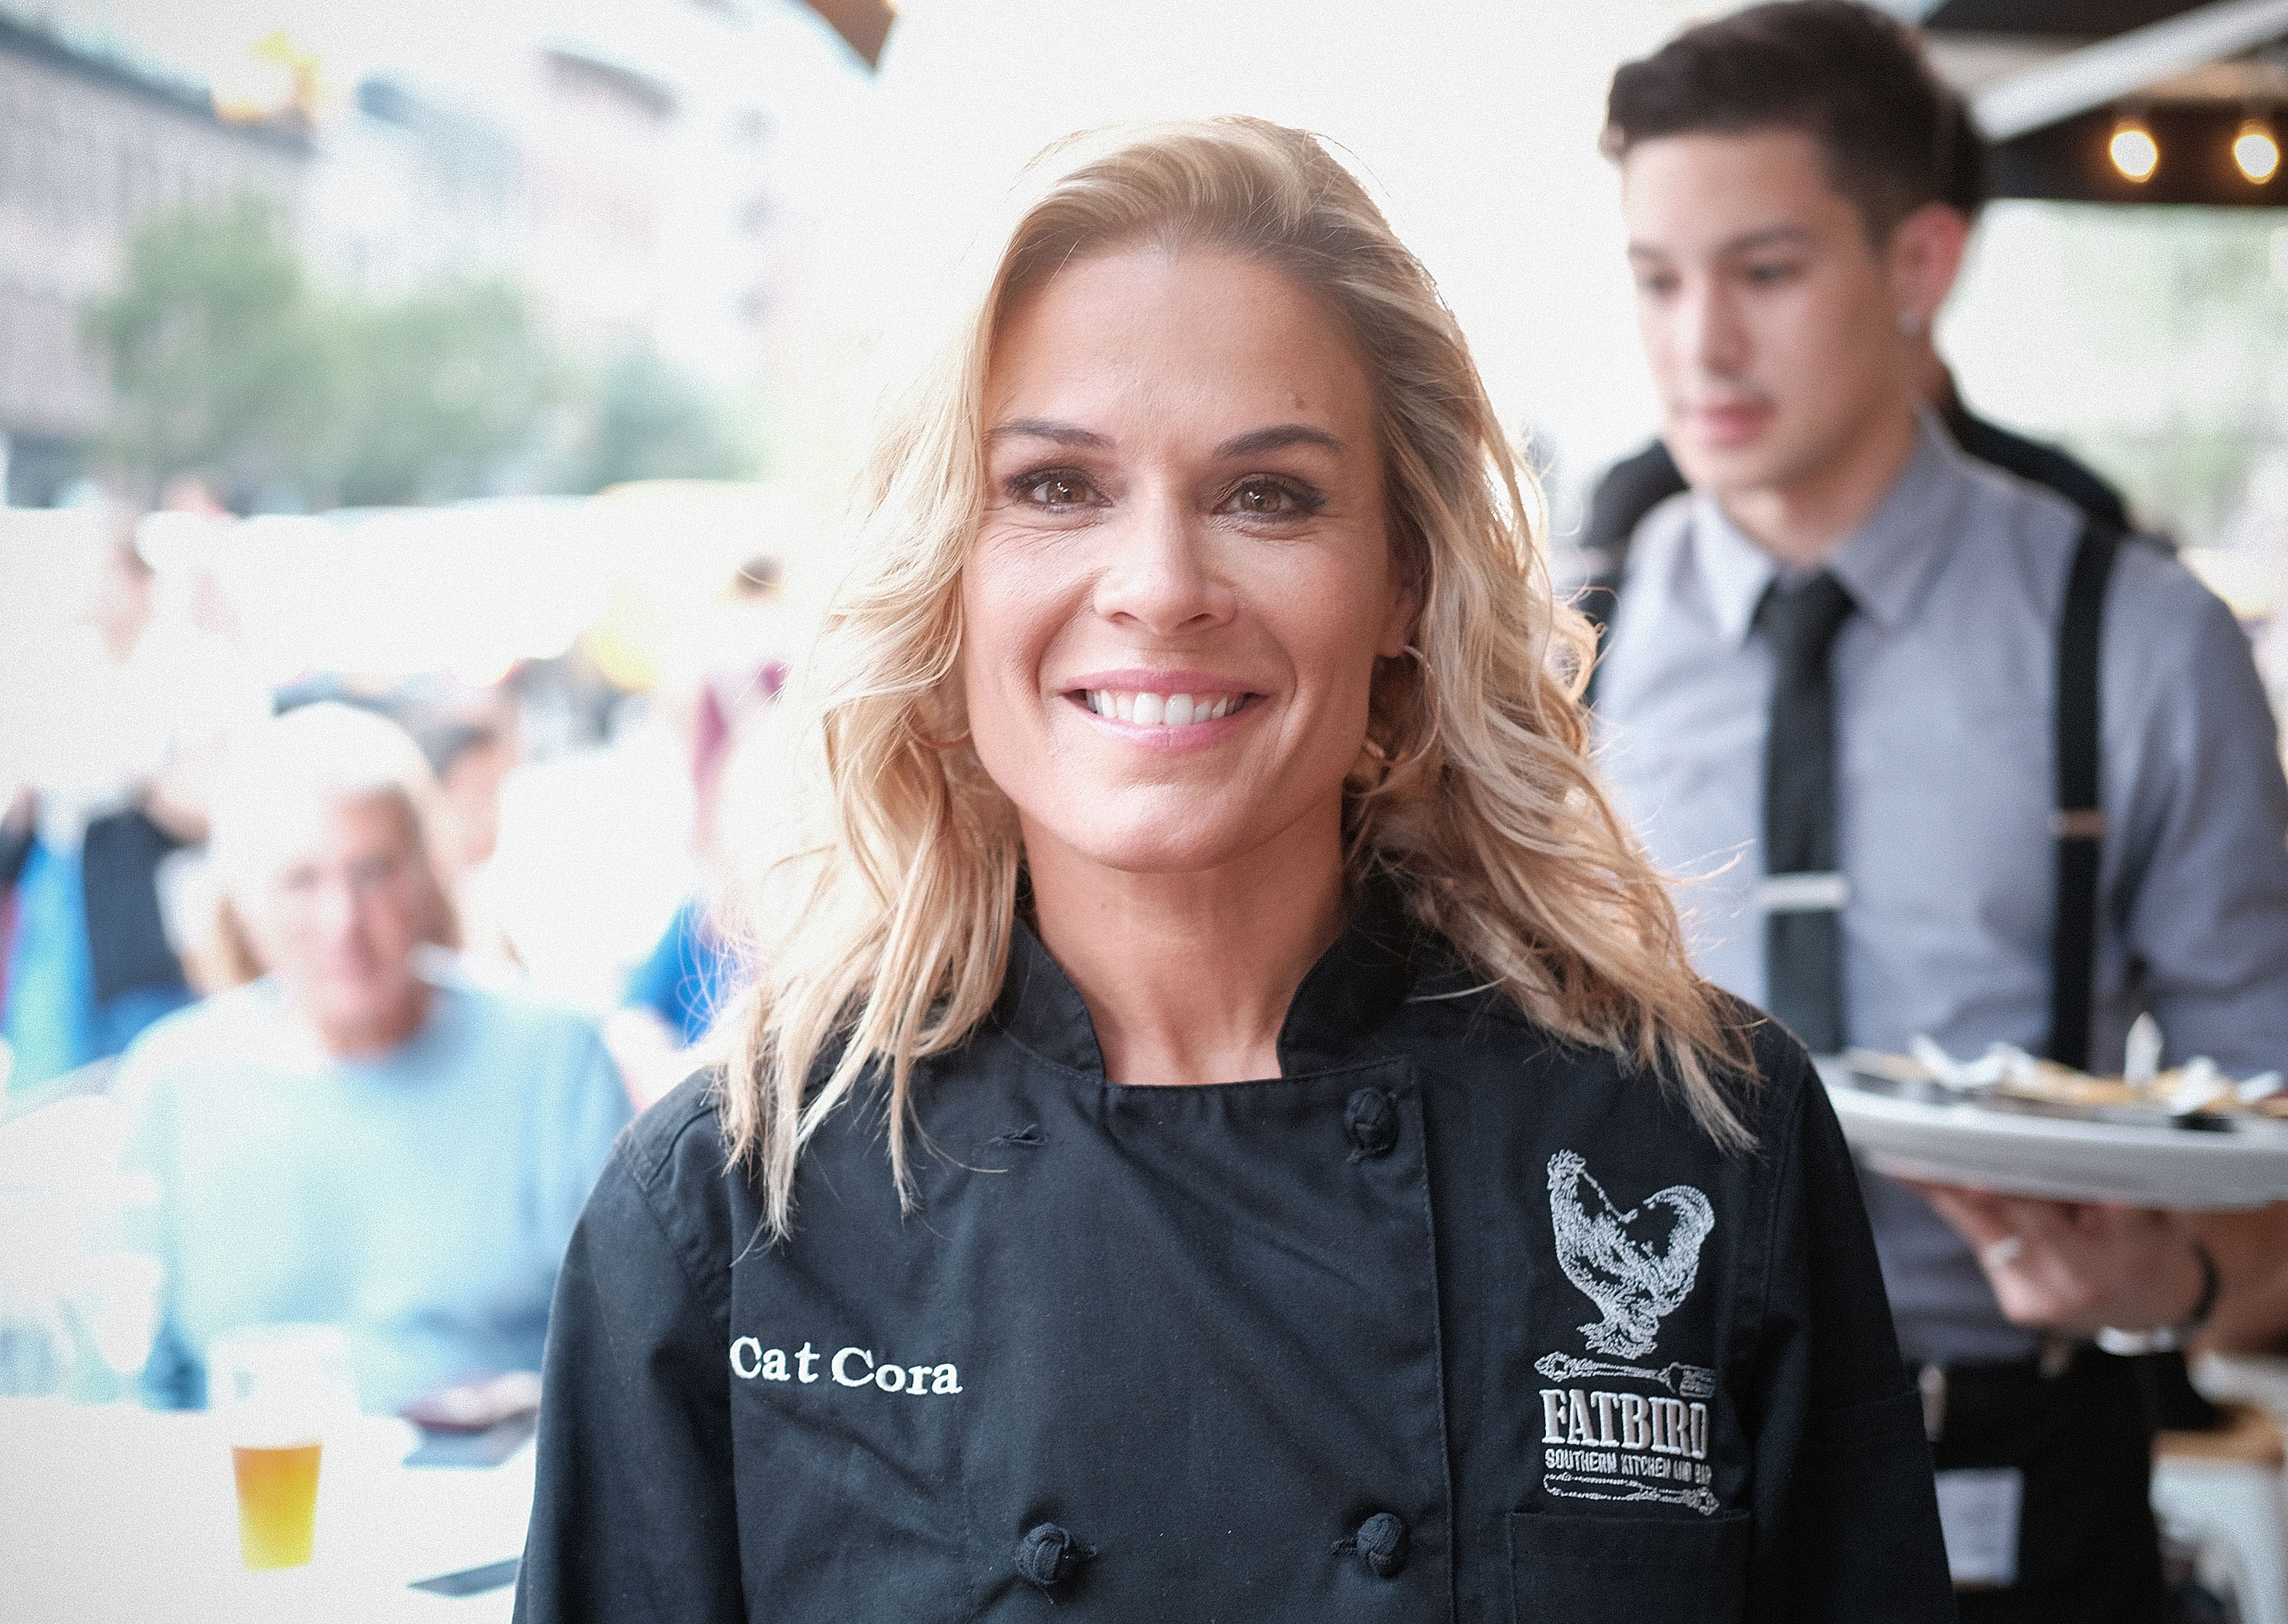 Cat Cora at the opening of her now-closed Fatbird